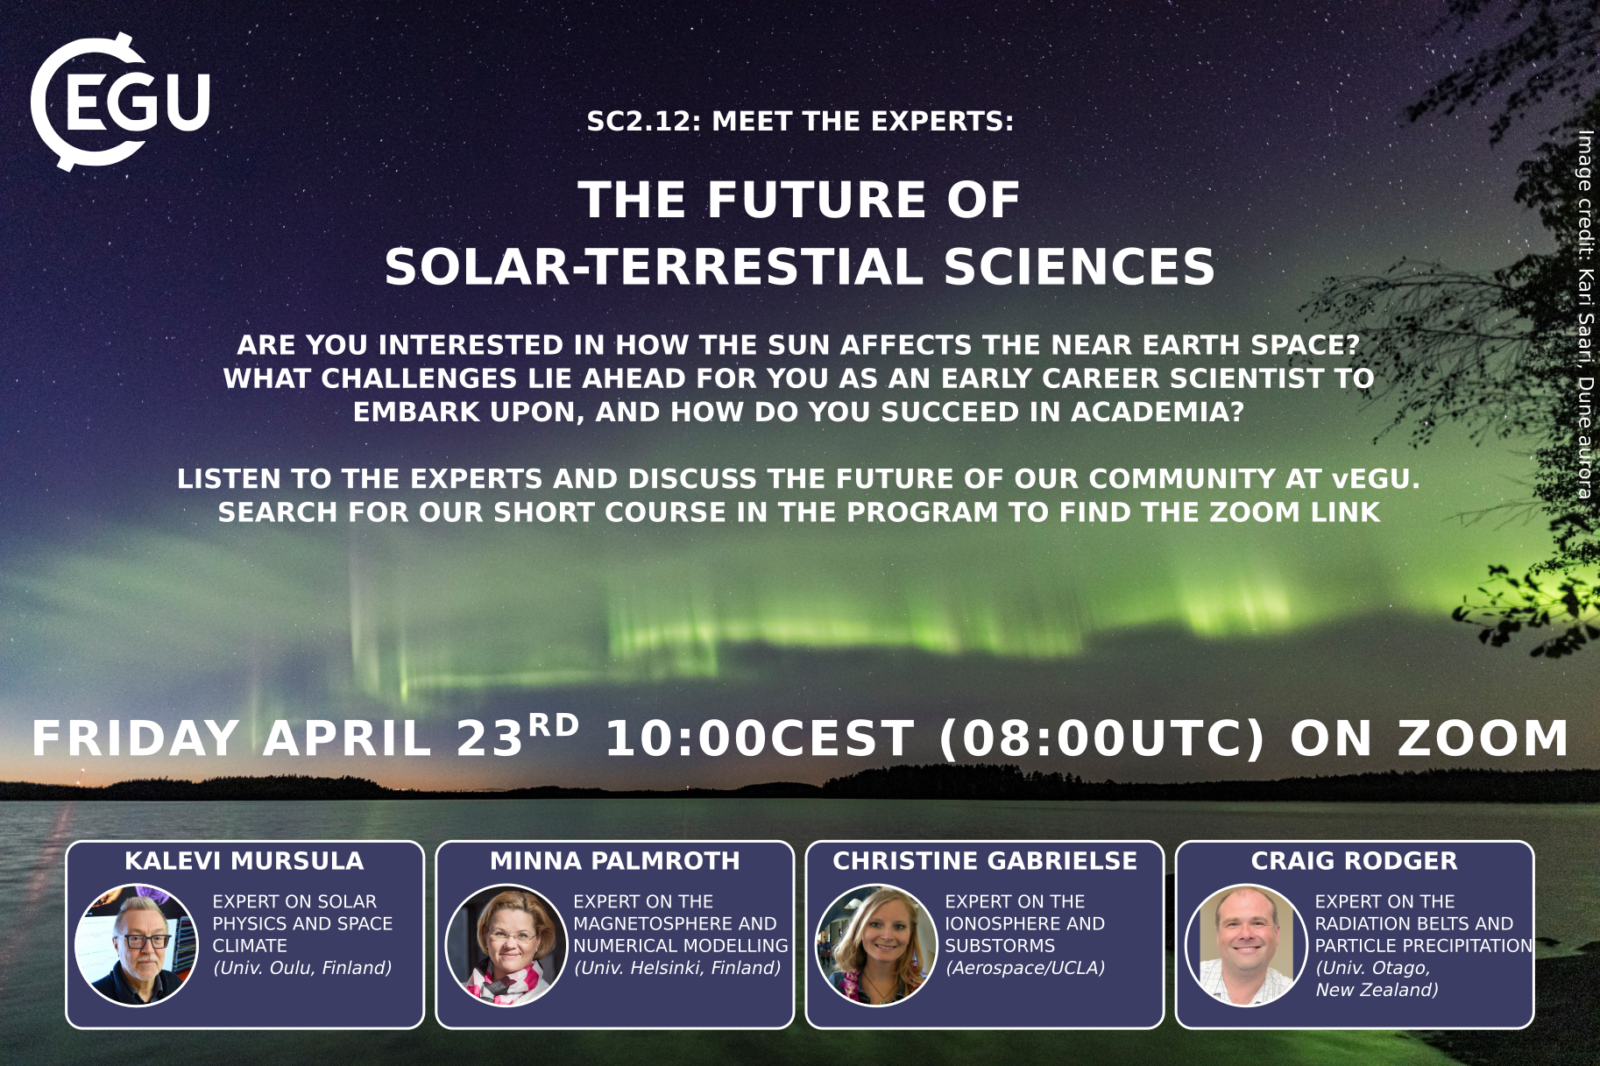 An infographic giving details of the Meet the Experts session for the Solar Terrestiral division of #vEGU_21